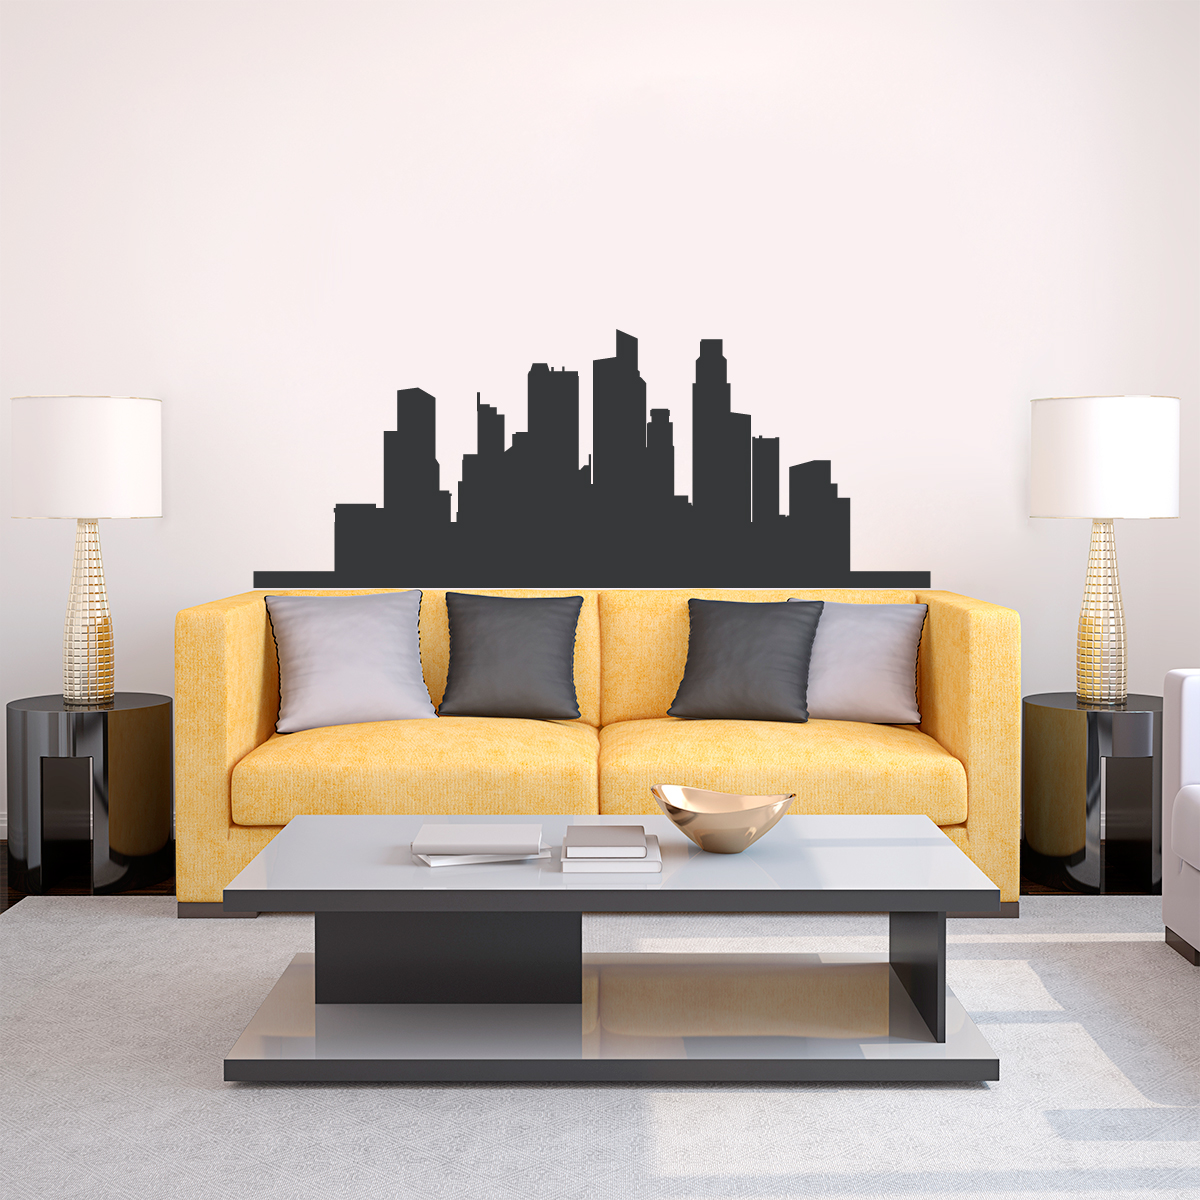 Singapore Skyline Vinyl Wall Decal Sticker - Wall decals singapore